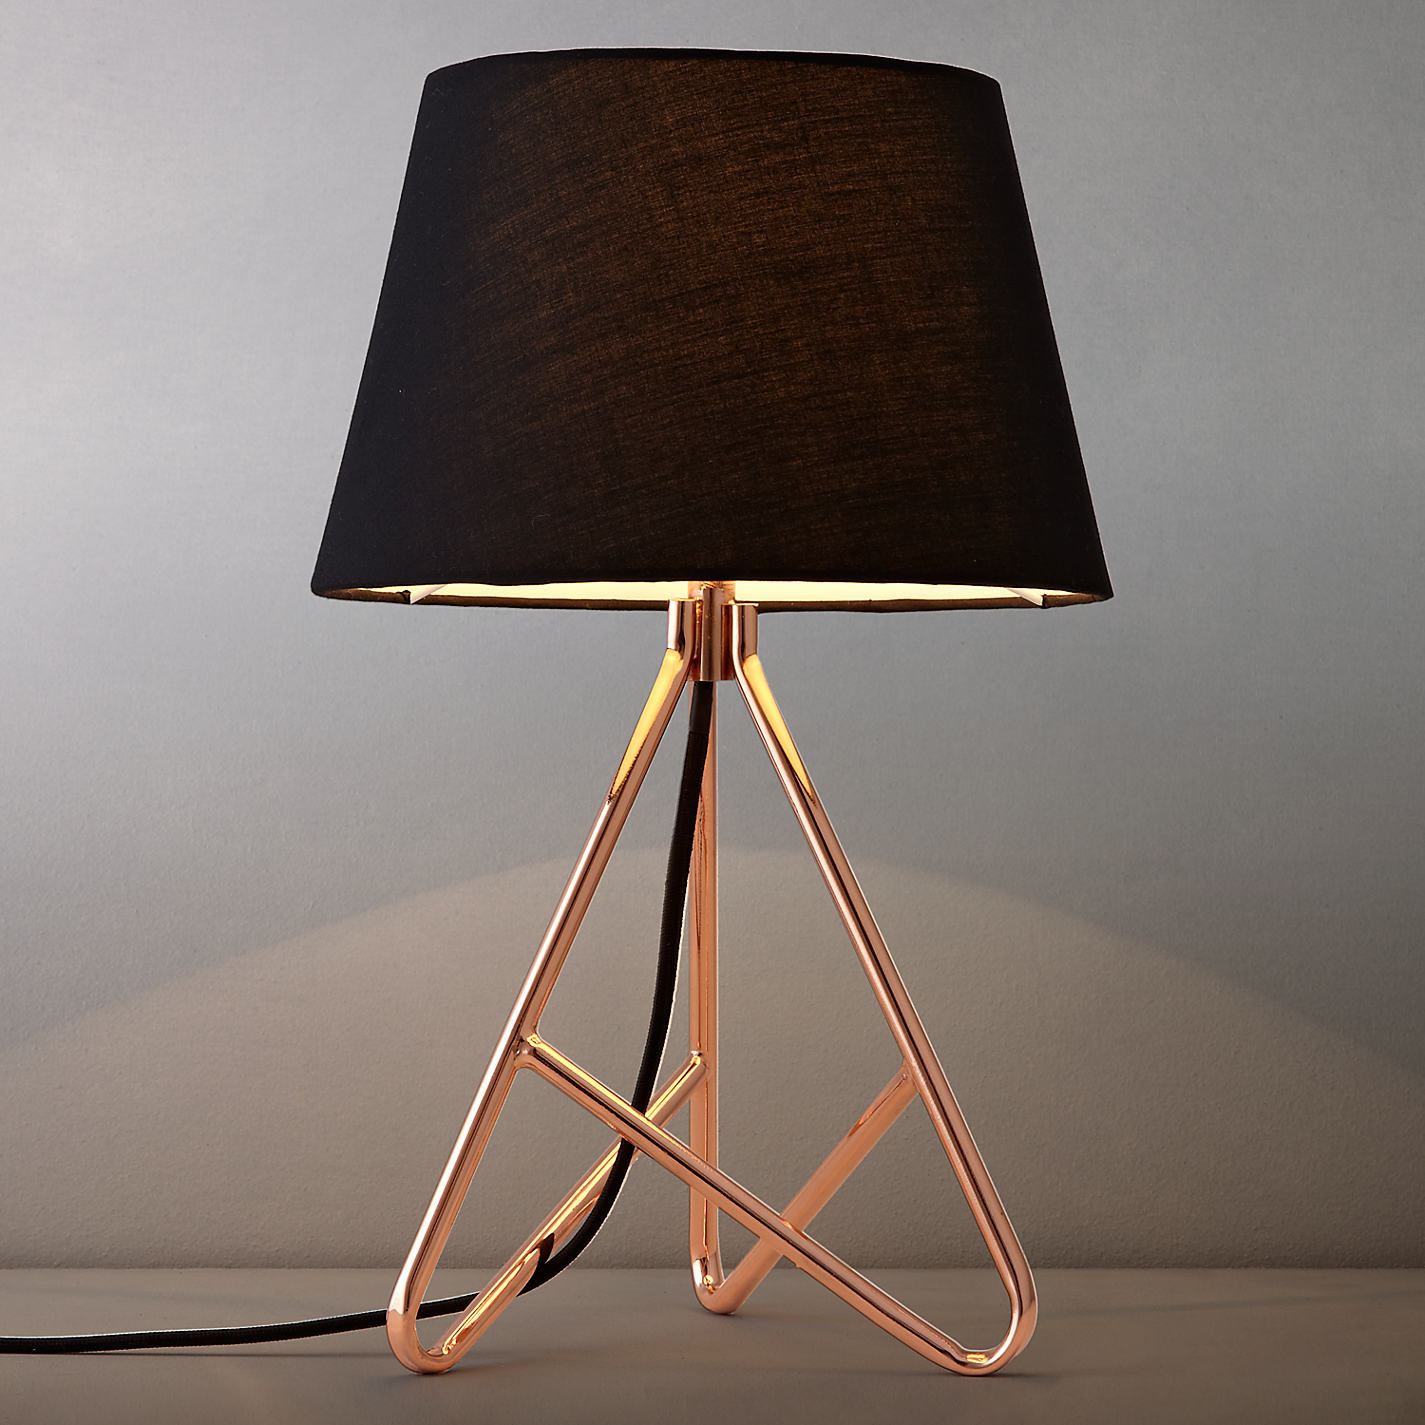 copper-table-lamp-photo-8